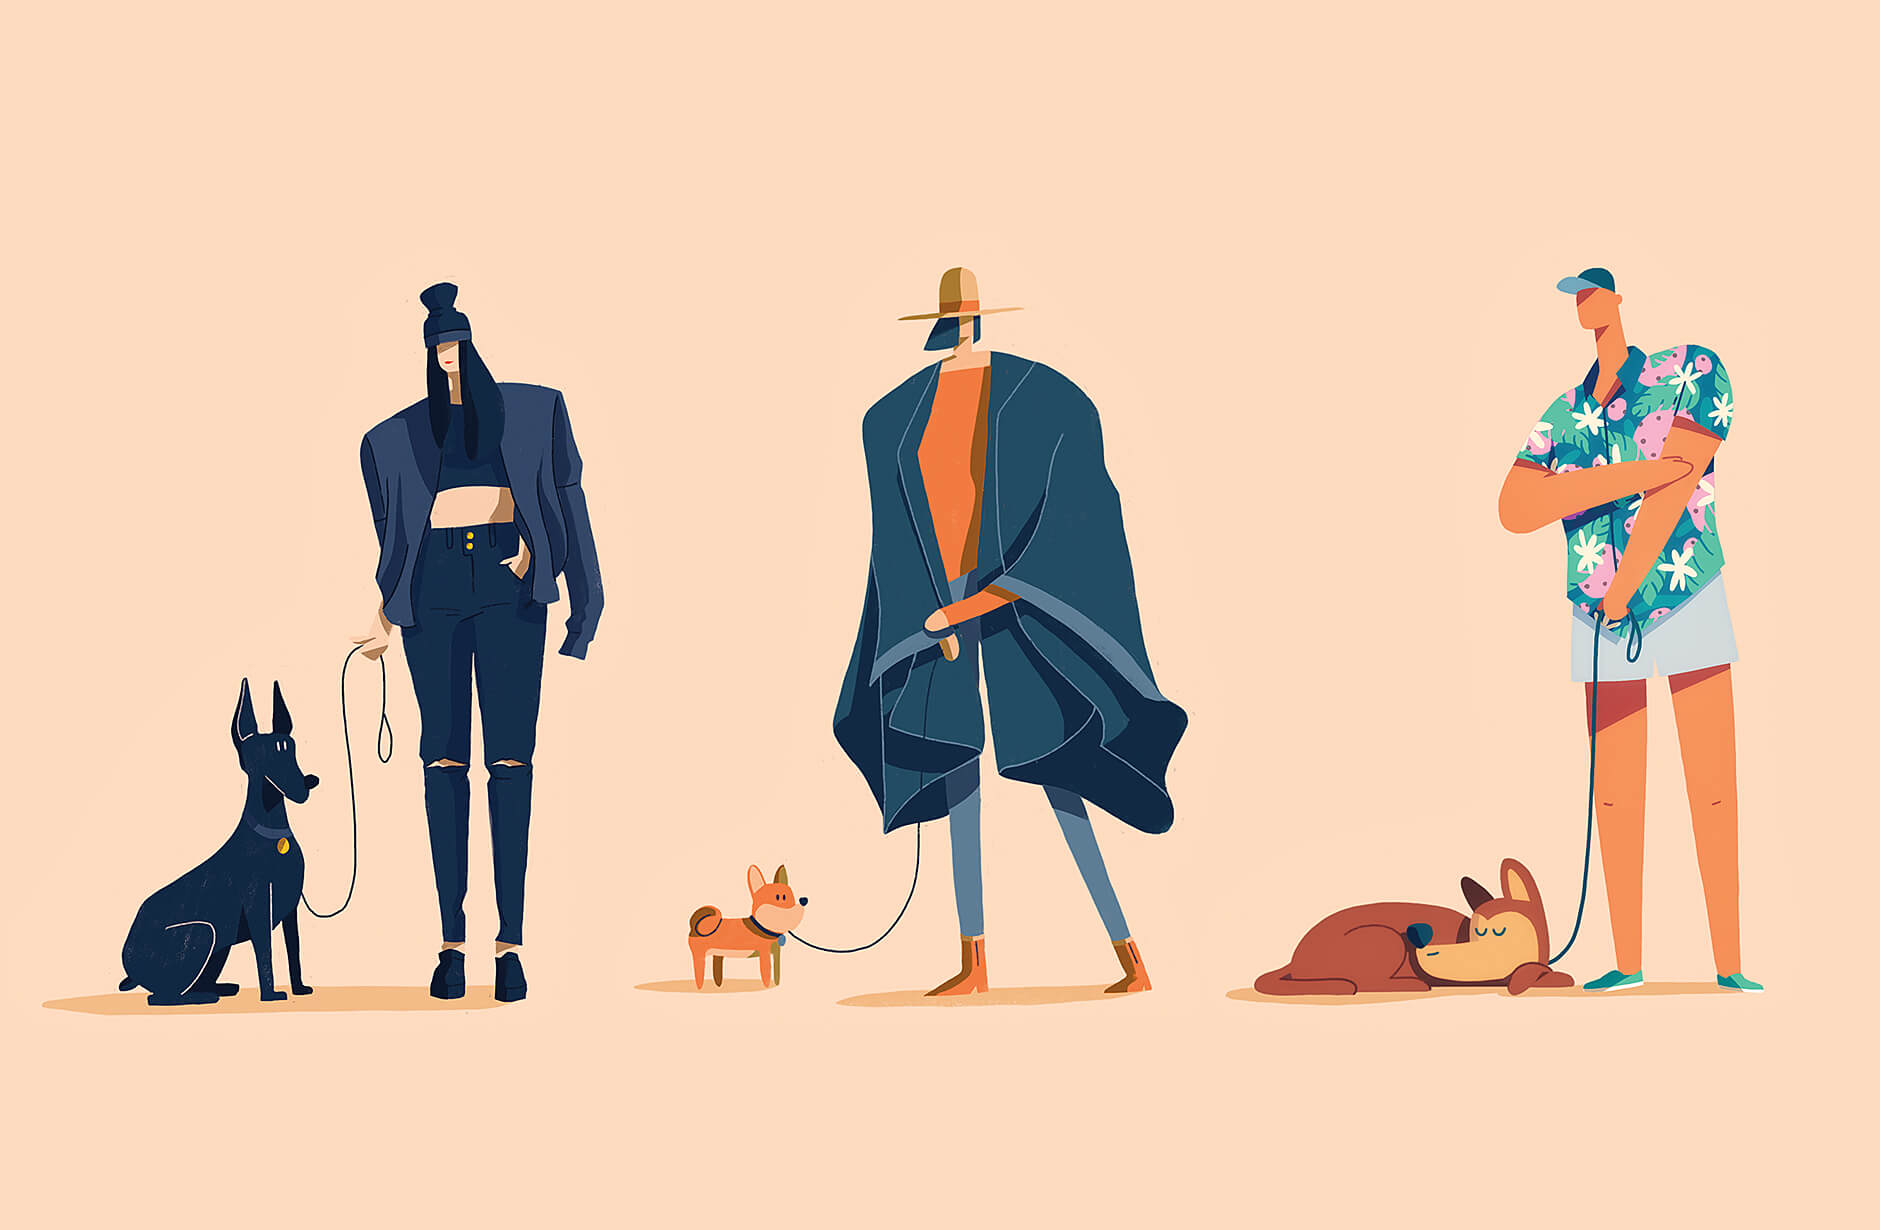 Illustration series Year Of The Dog Walker celebrating street fashion